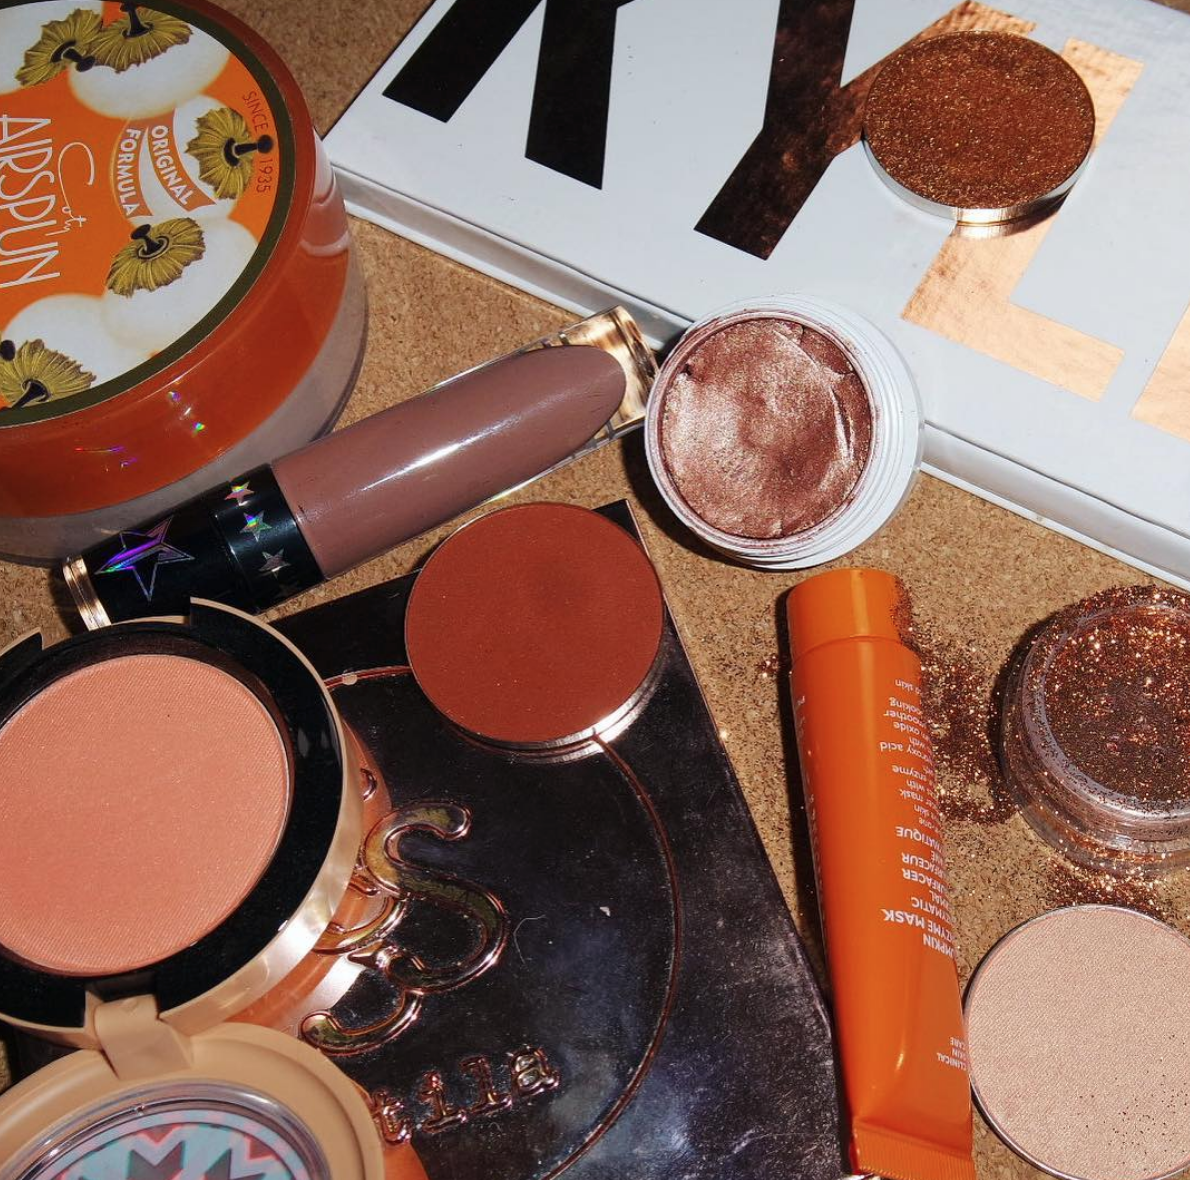 100+ Labor Day 2019 Beauty Sales and Deals: A Guide to Shopping Beauty Deals on Labor Day Weekend - August 30, 2019